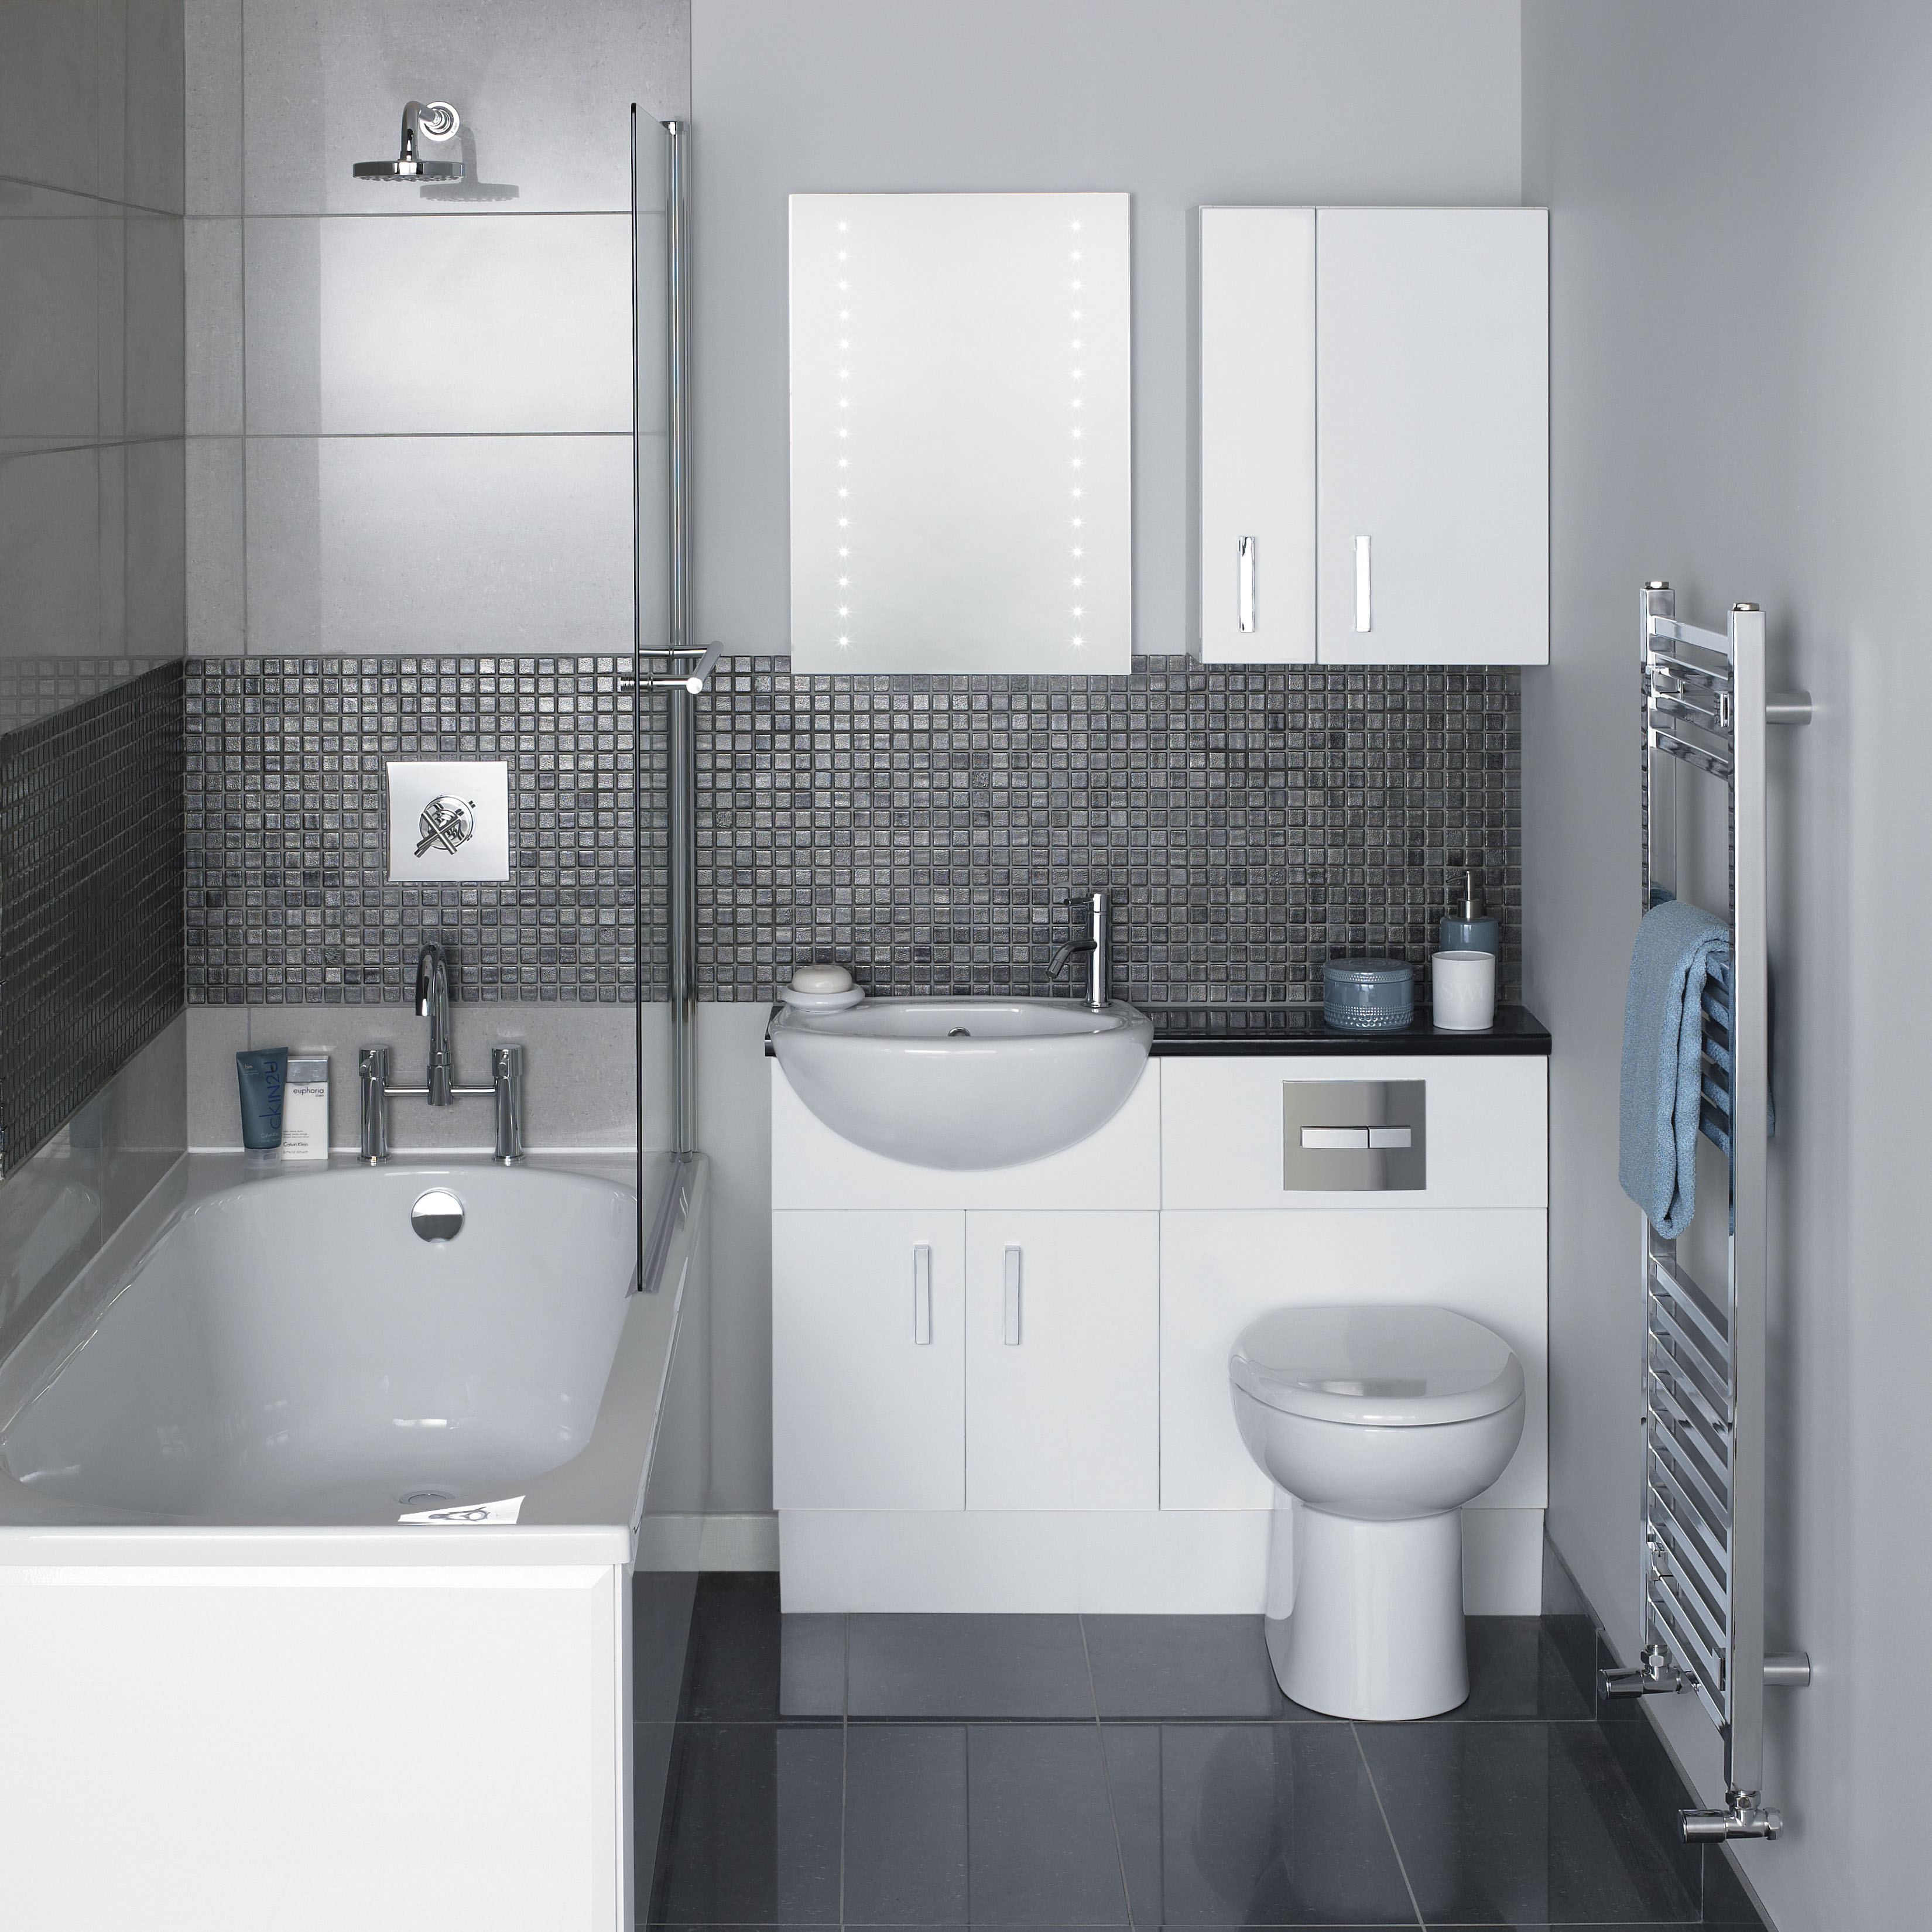 Bathroom Furniture Glasgow Bathroom Design Amp Installation Specialists Glasgow Bathroom Design